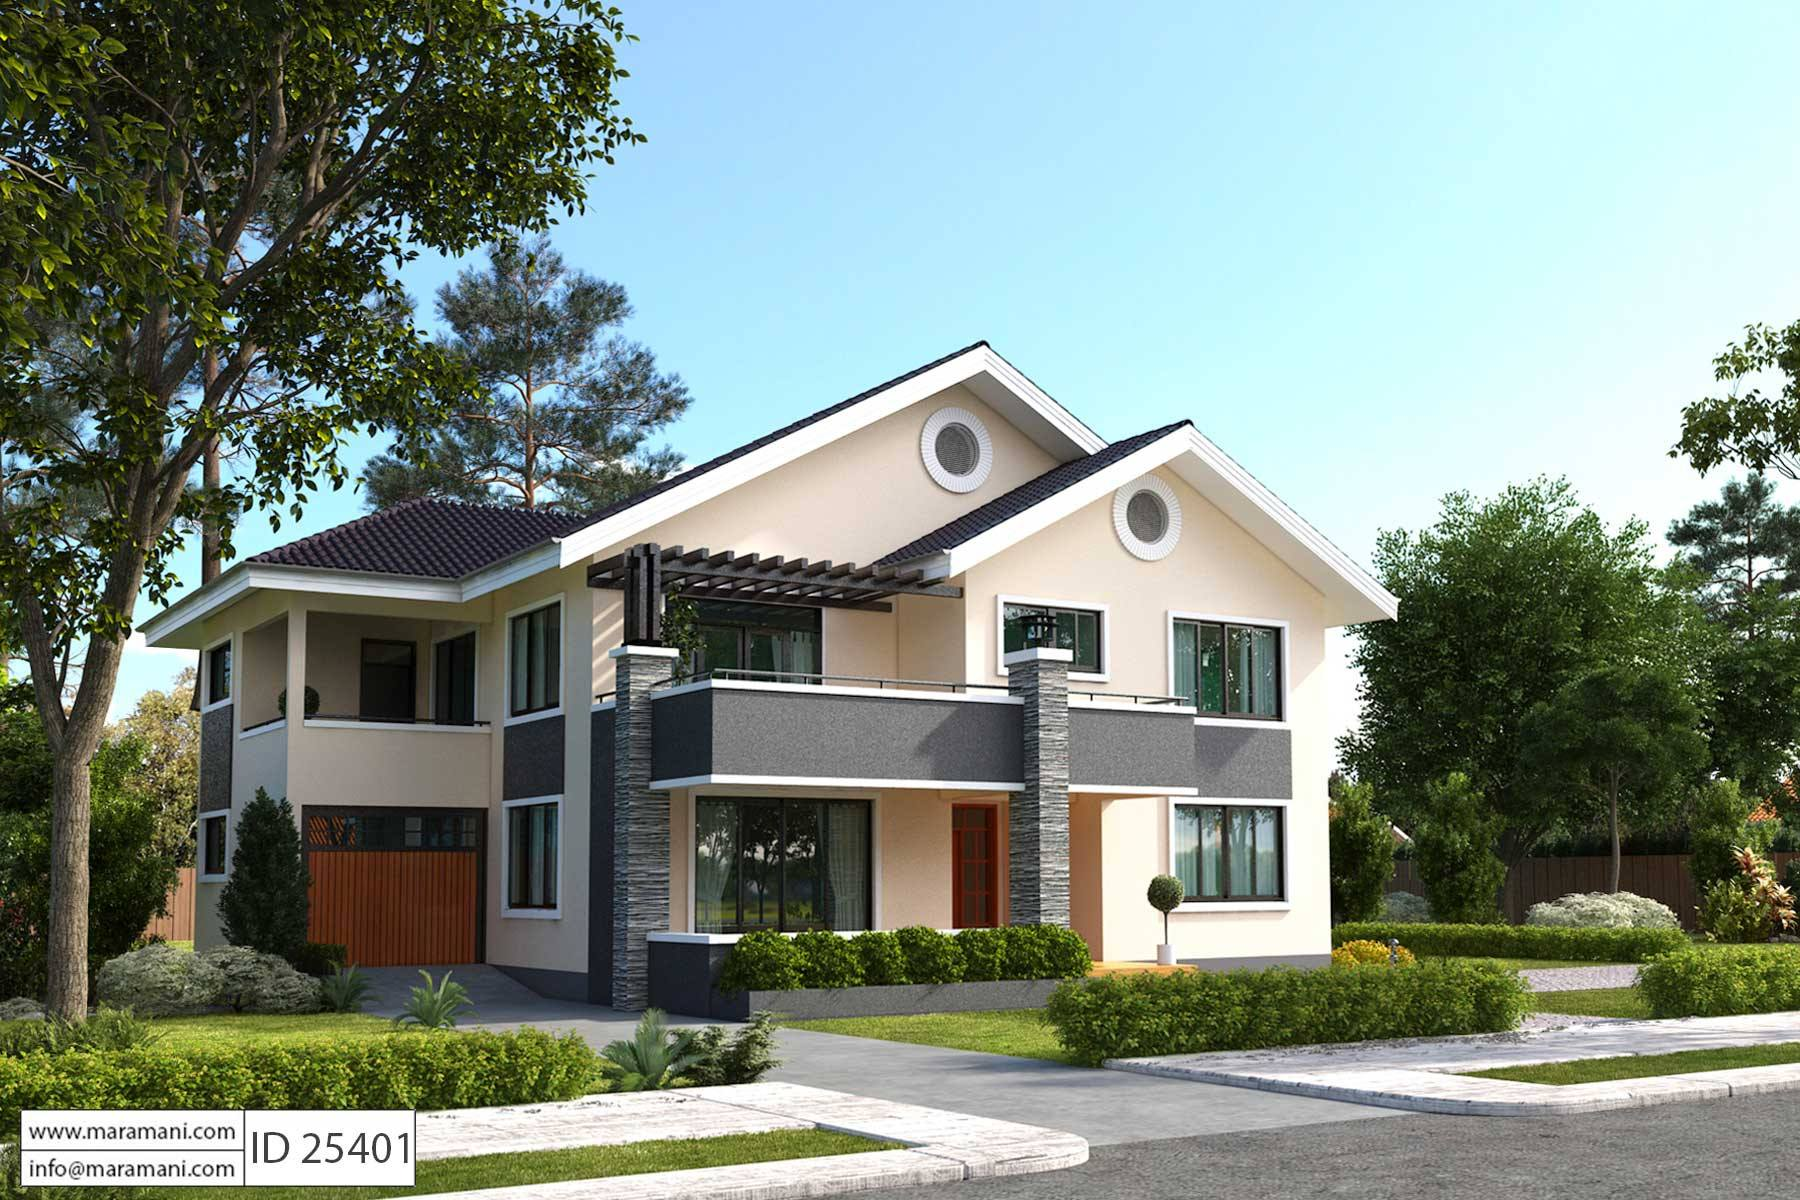 5 bedroom house plan id 25401 floor plans by maramani for 5 bedroom house